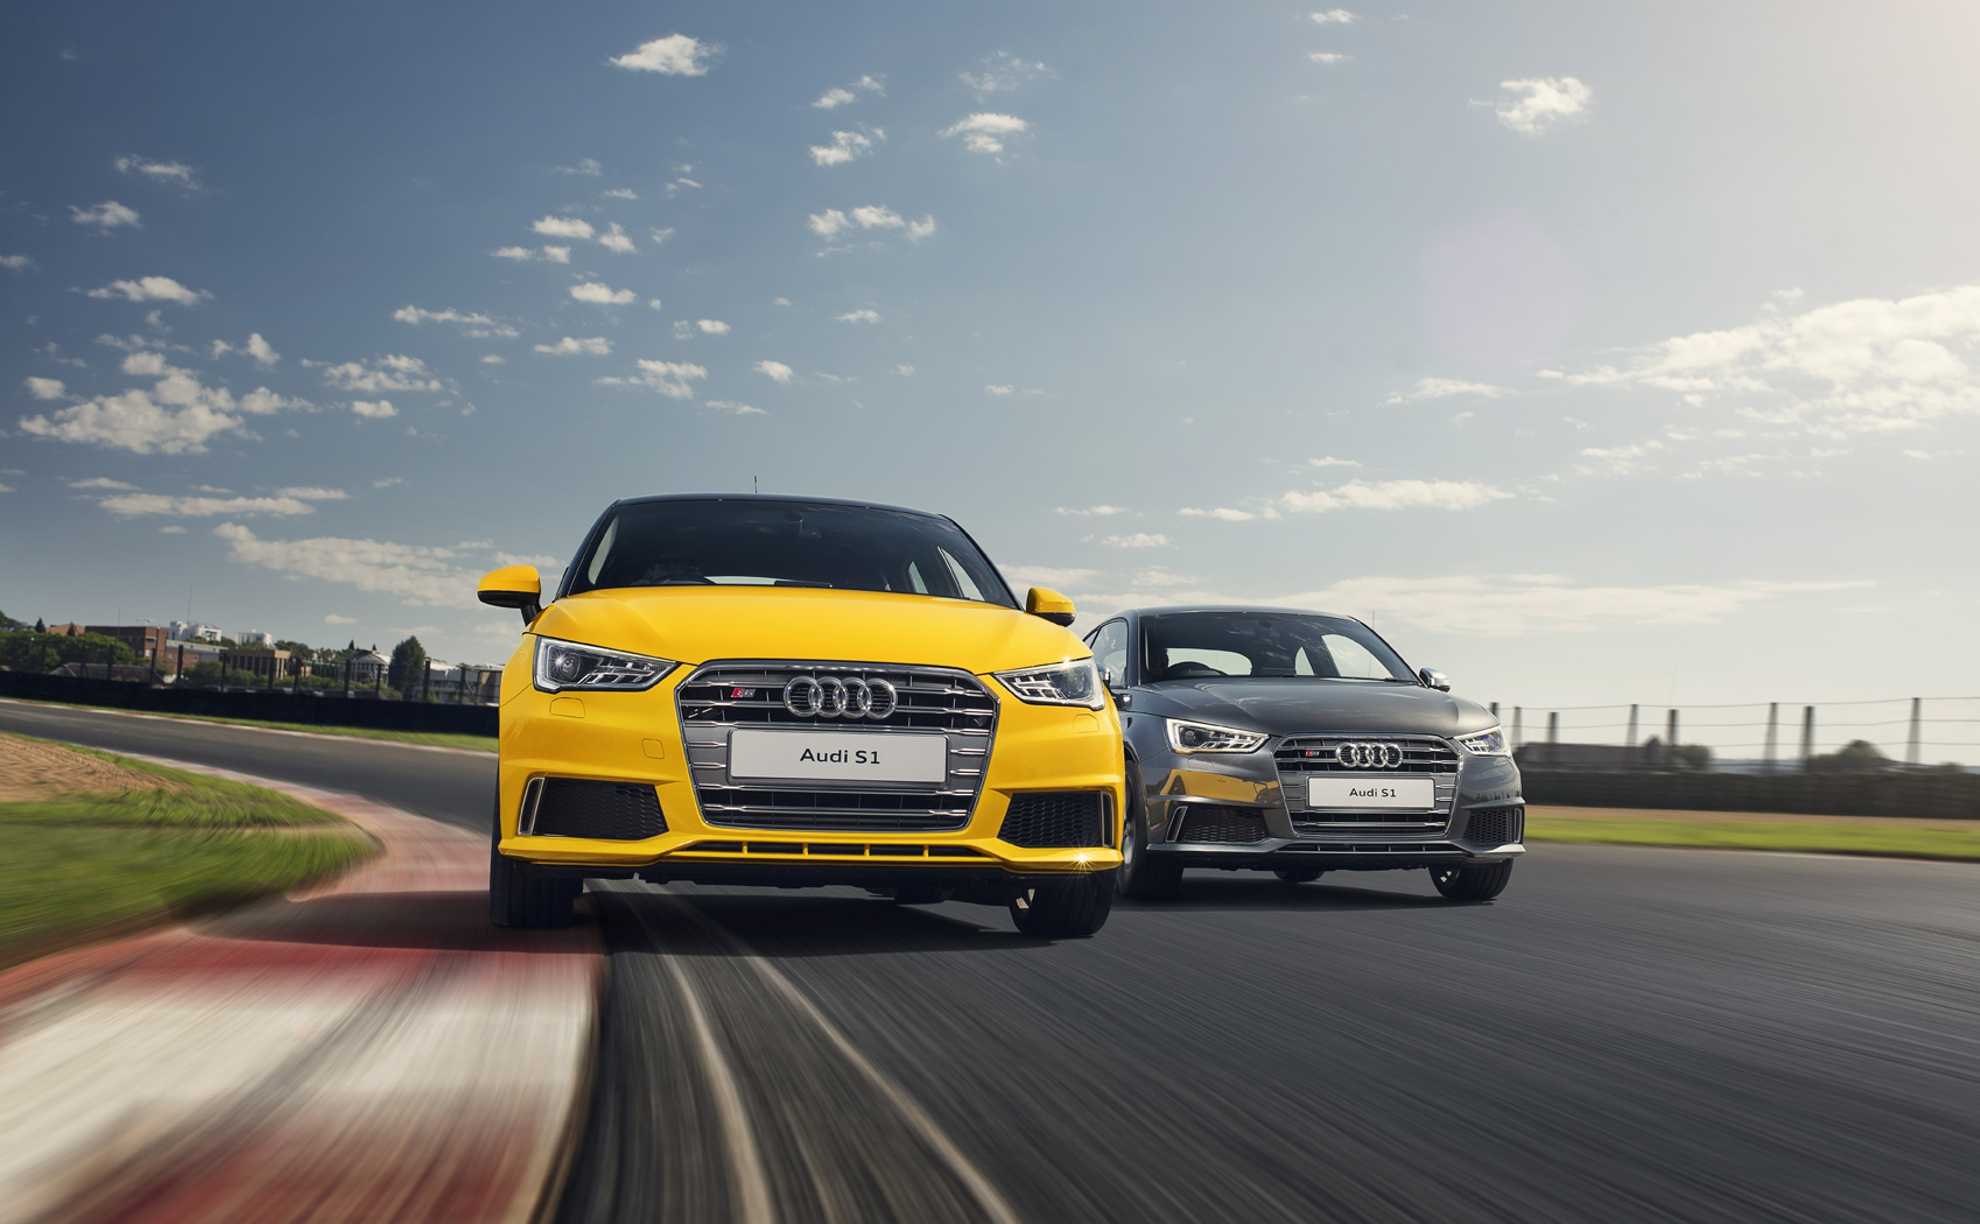 The new Audi S1